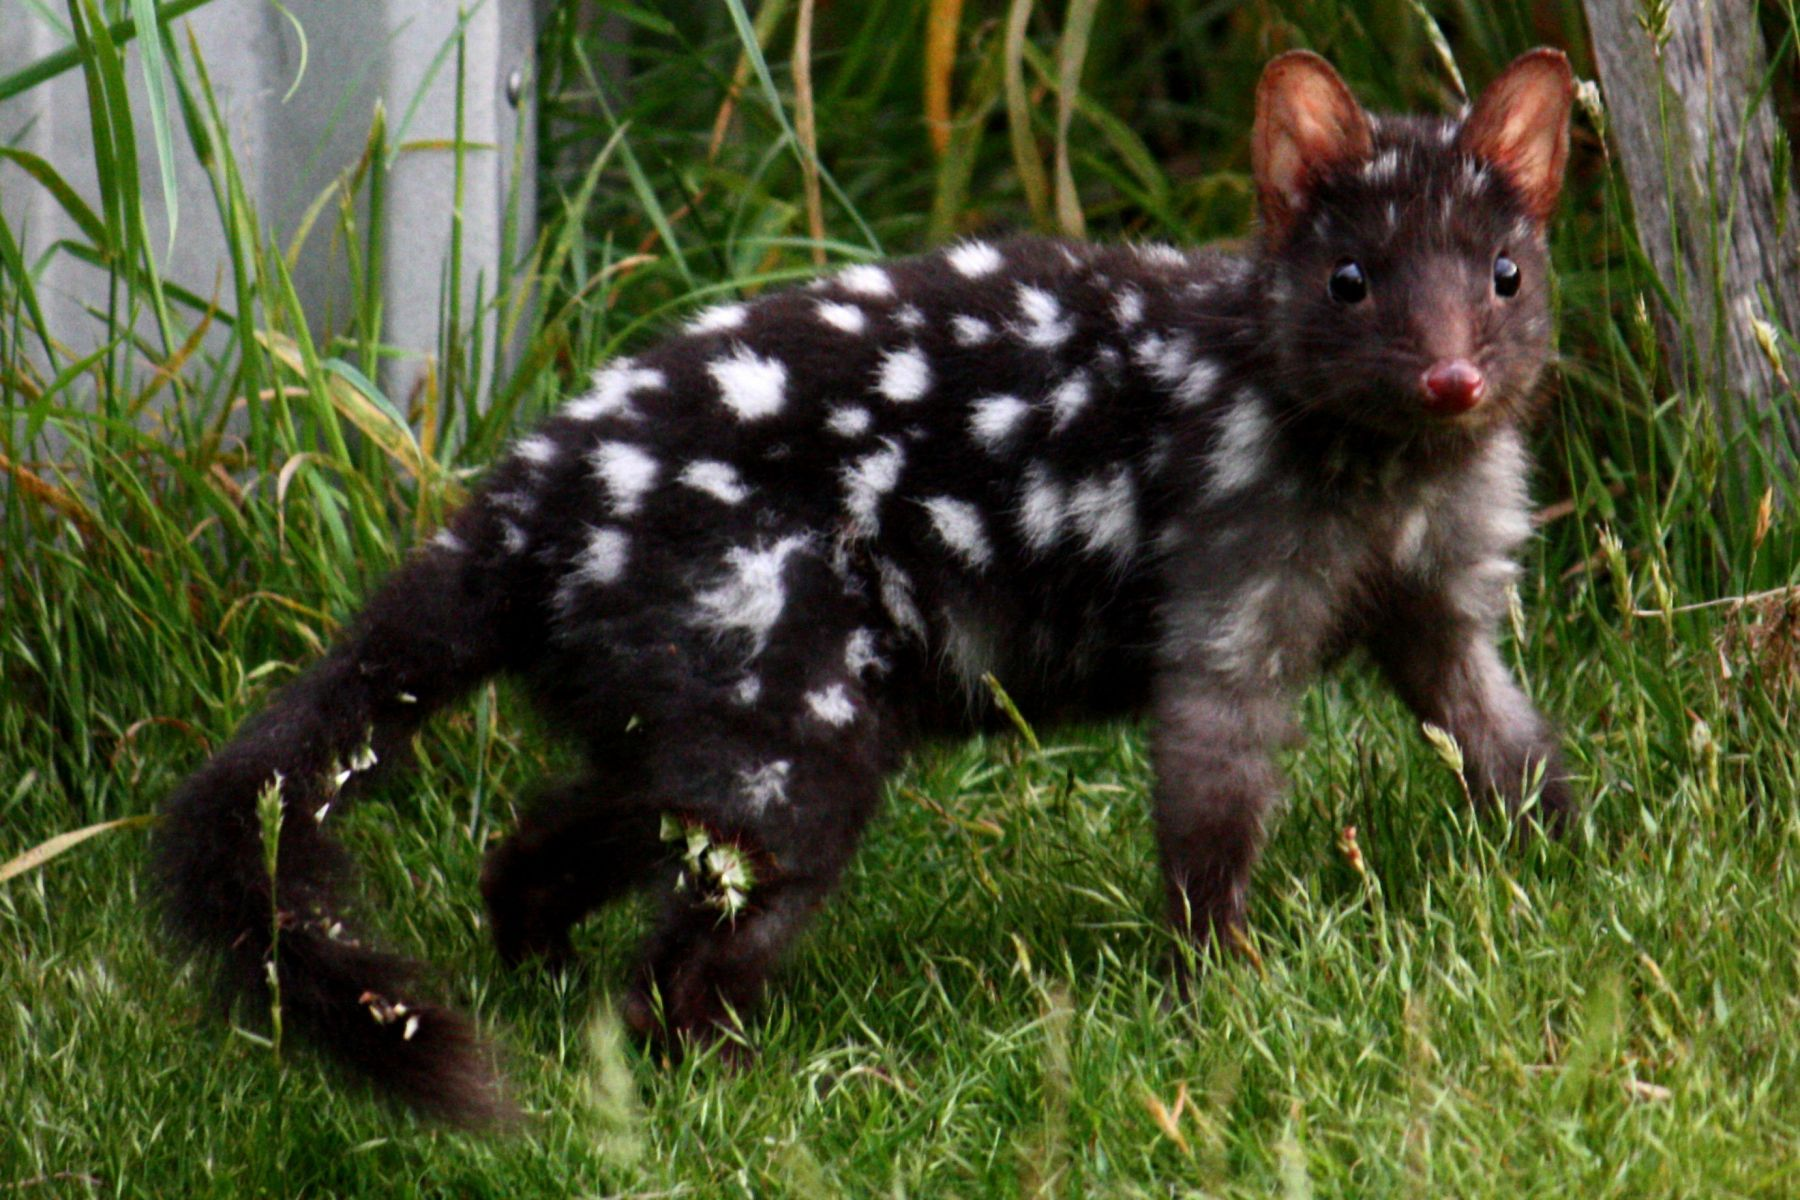 The Cute Polka Dot Eastern Quolls Begin Their Reintroduction To Mainland Australia